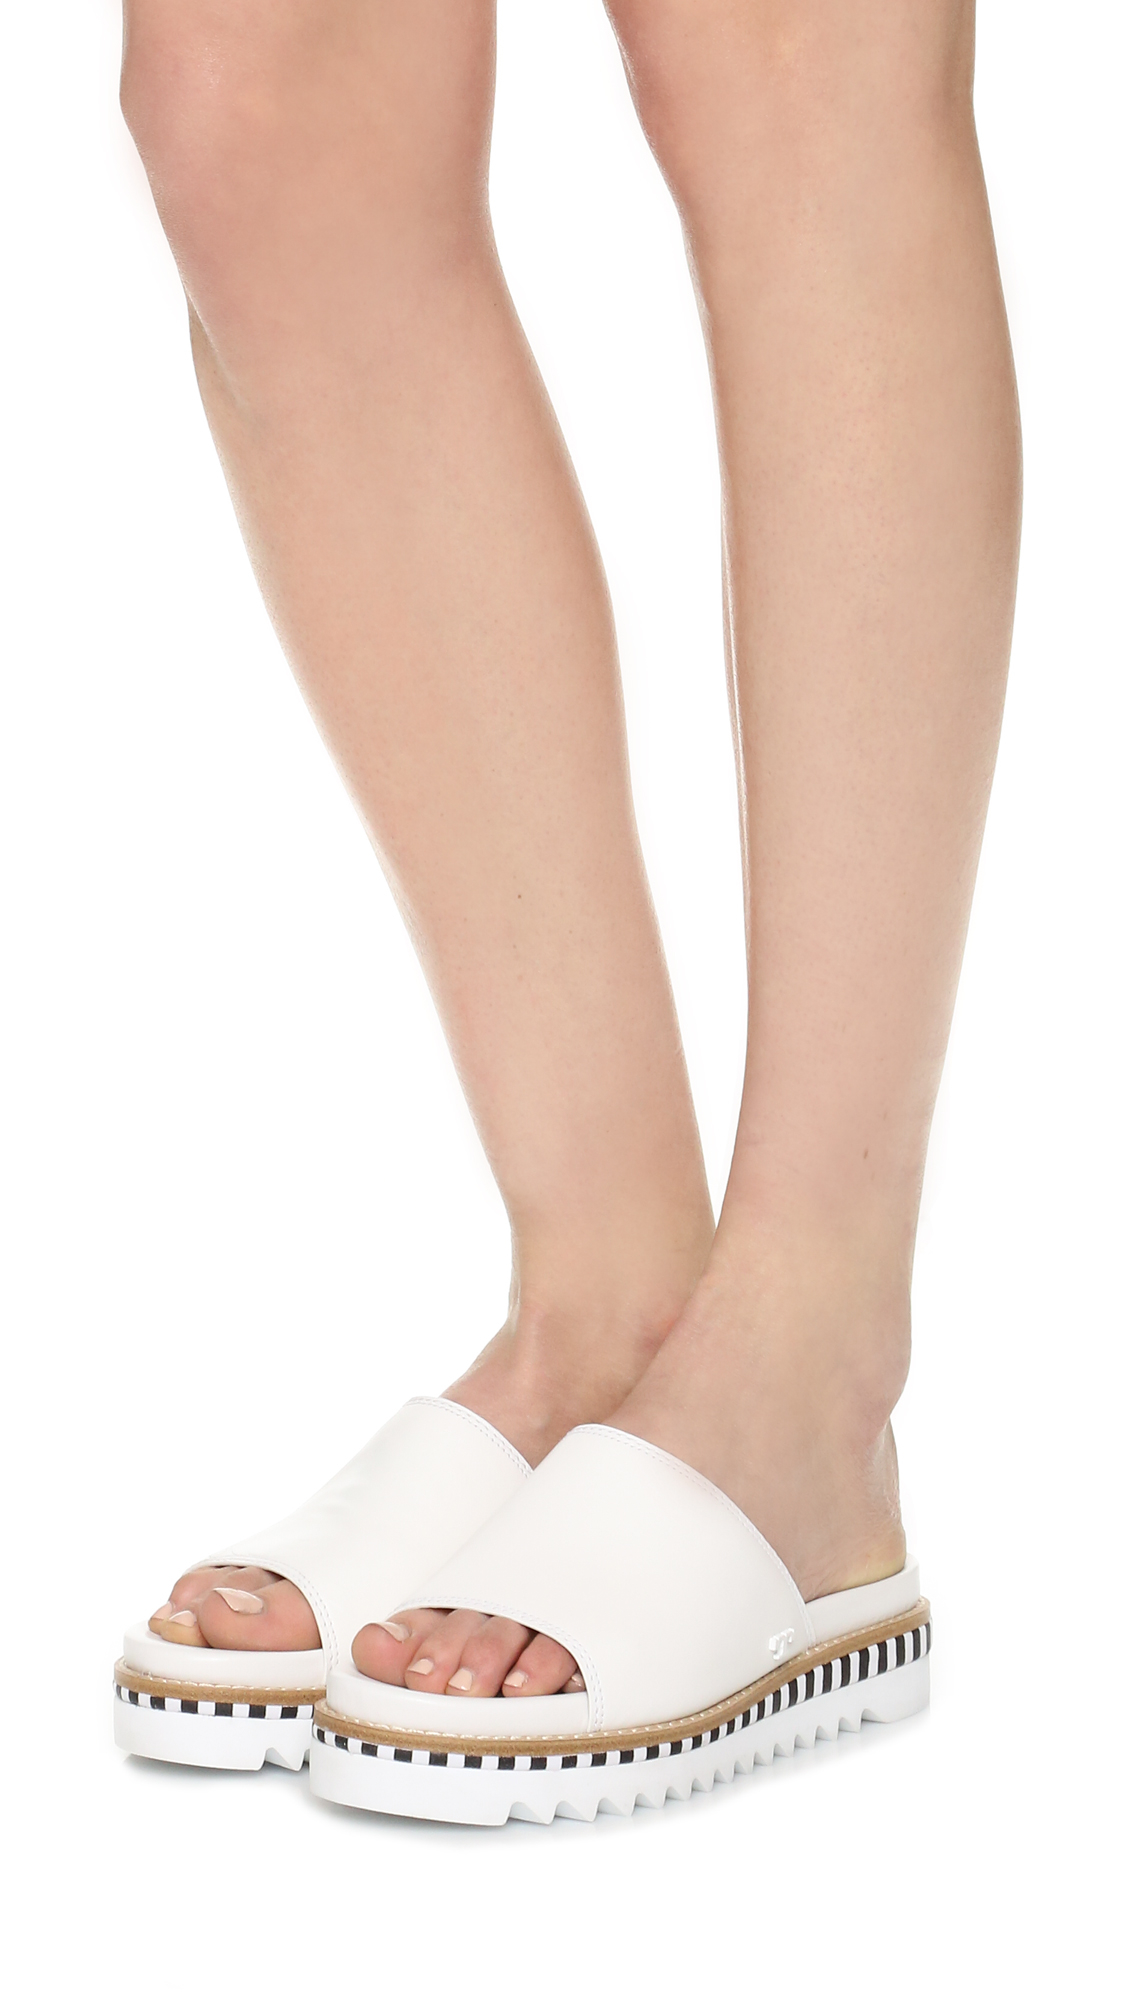 785f1d74346 Lyst - Tory Burch Sawtooth Slide Sandals in White